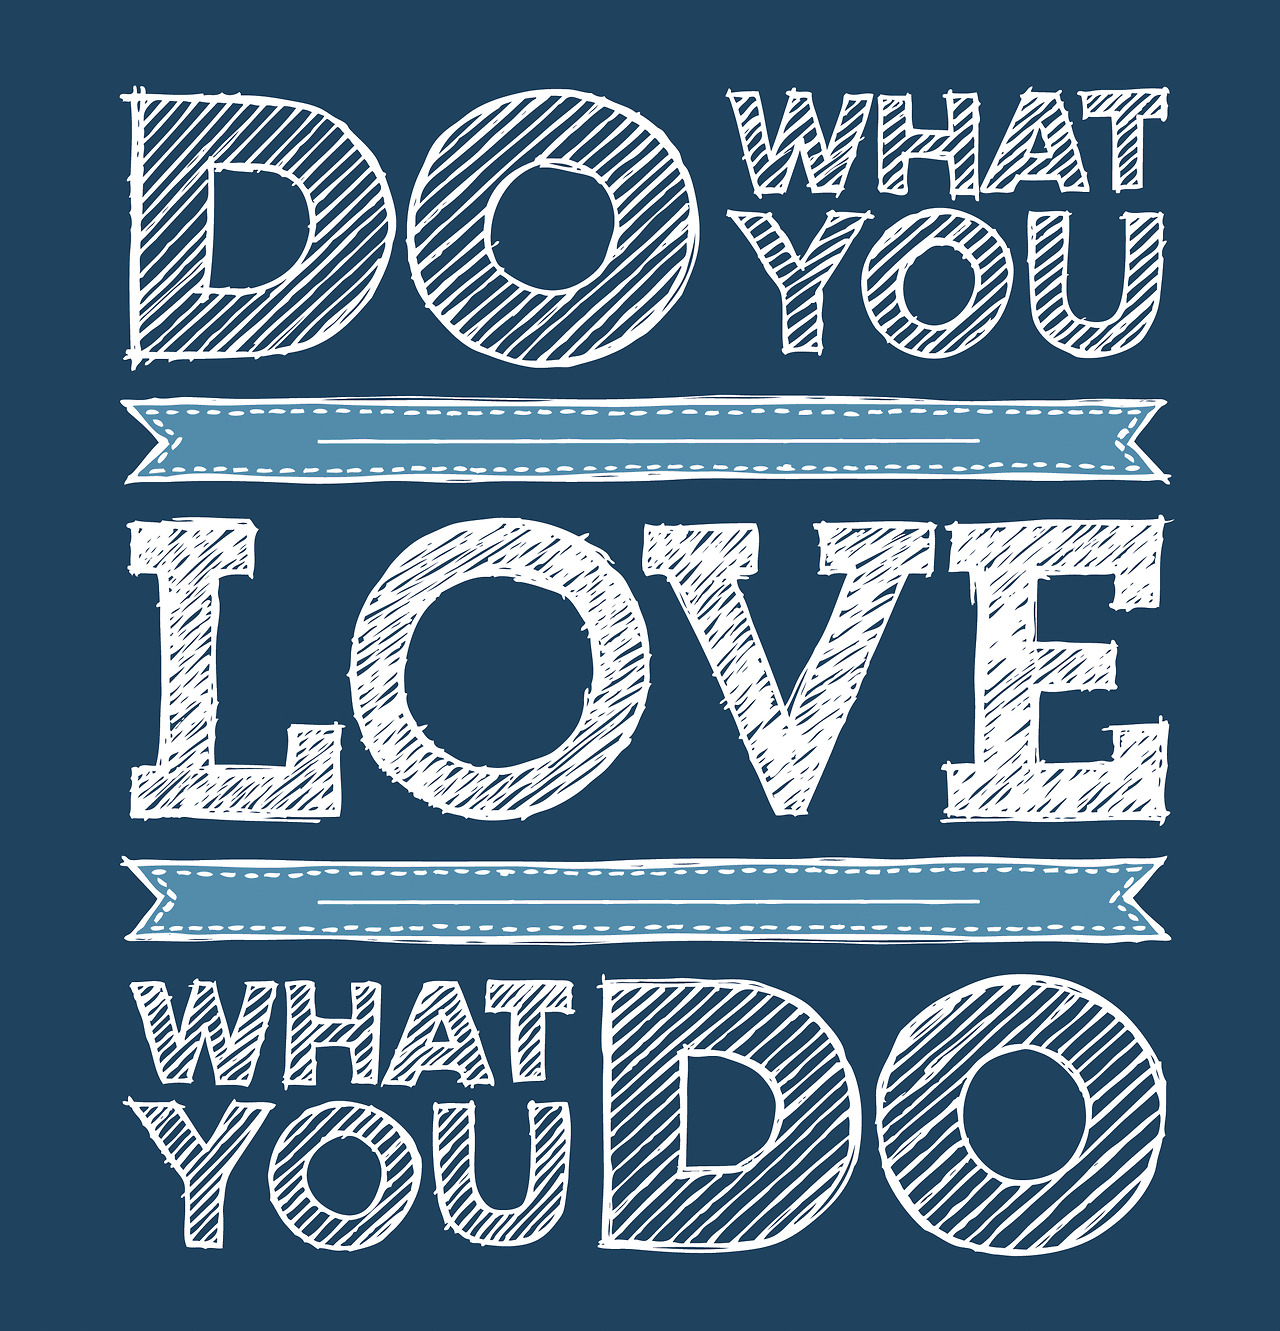 Image via  Mike McDonald /Shutterstock       Do what you love. Love what you do.